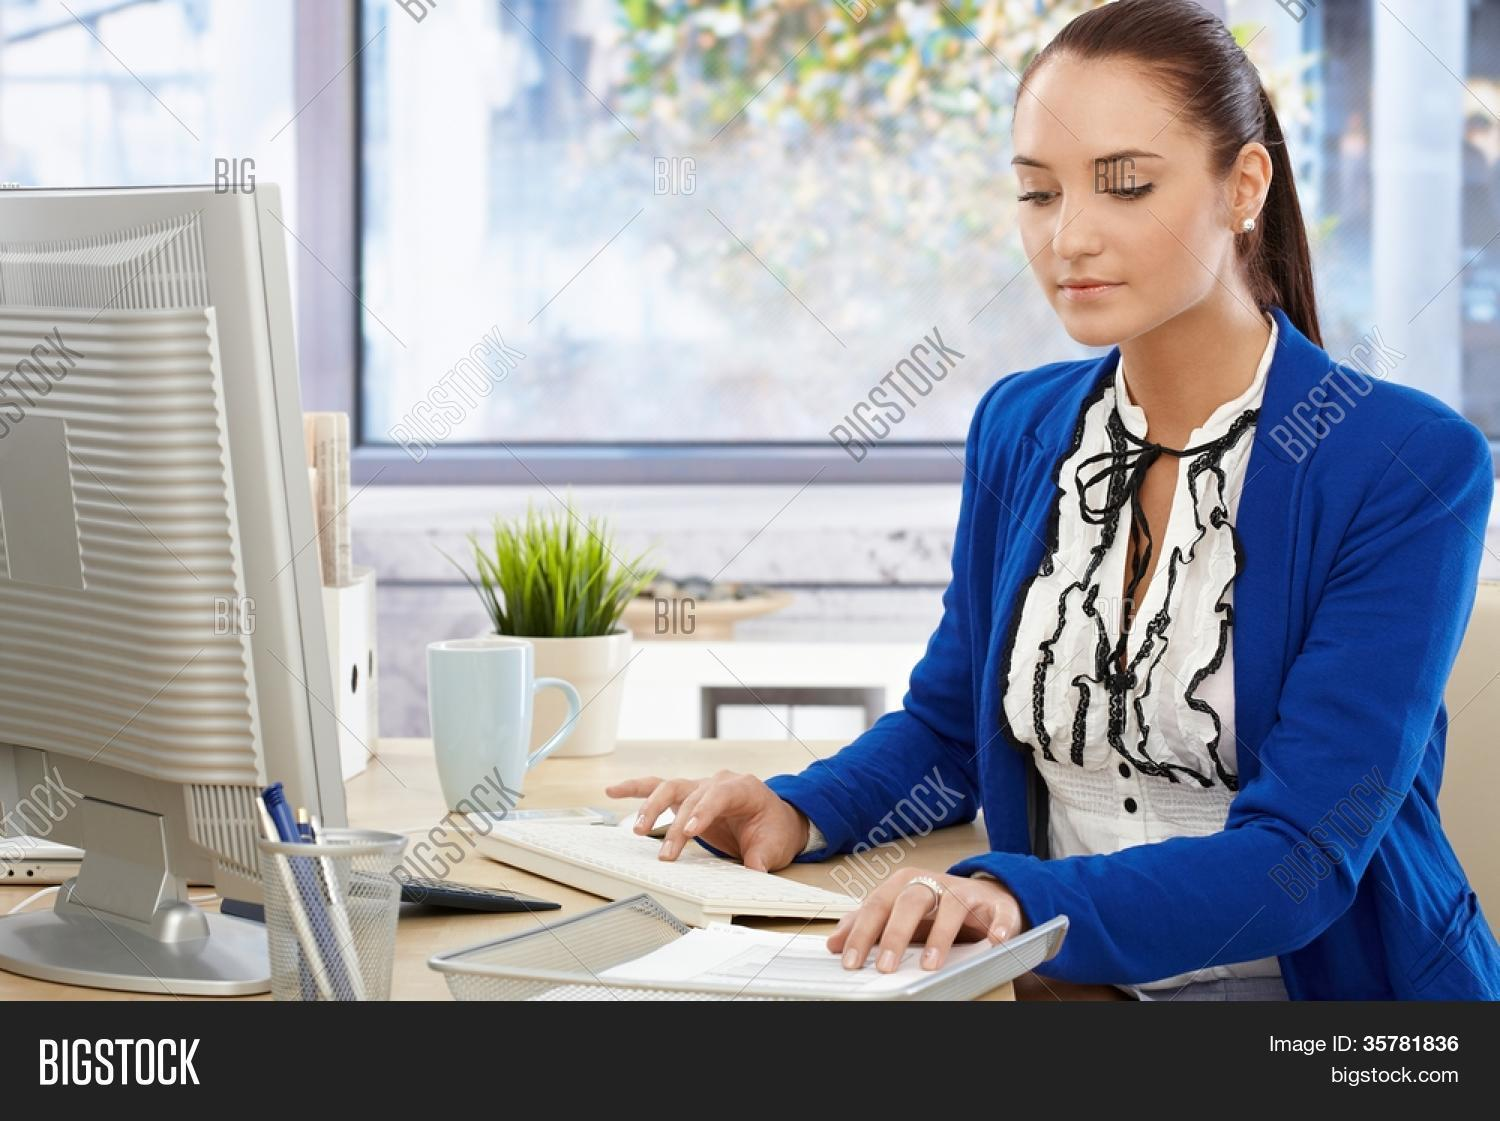 beautiful office girl busy working at bright desk typing on keyboard and checking document beautiful bright office